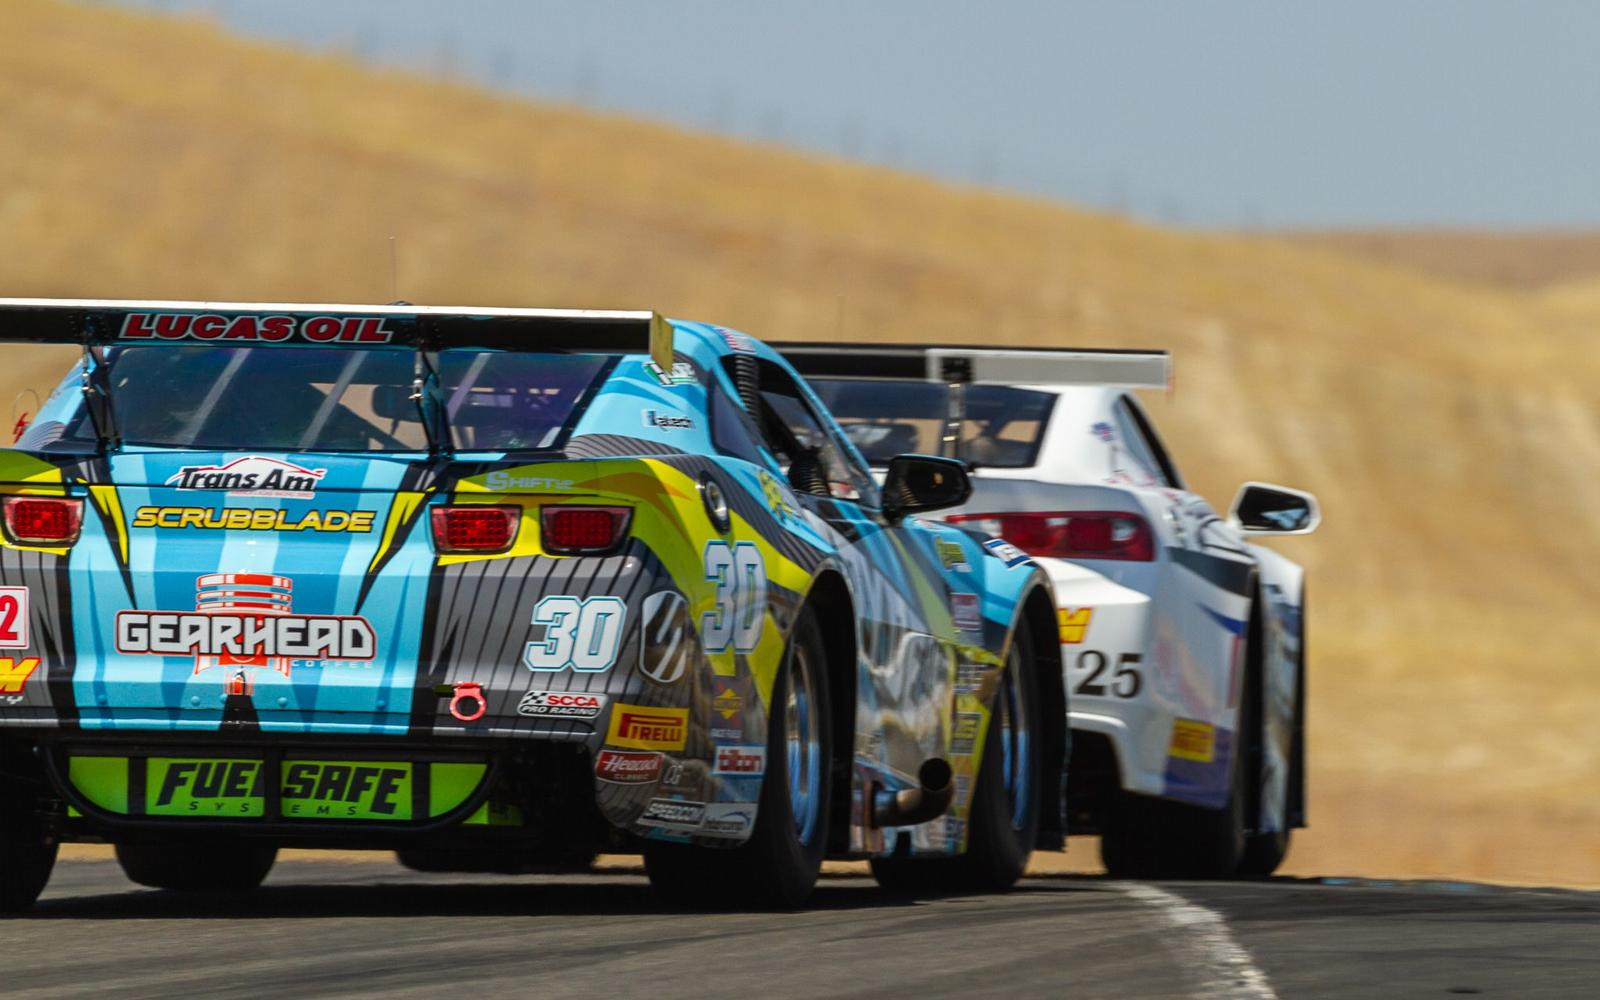 Trans Am West Coast Championship Back in Action at Thunderhill